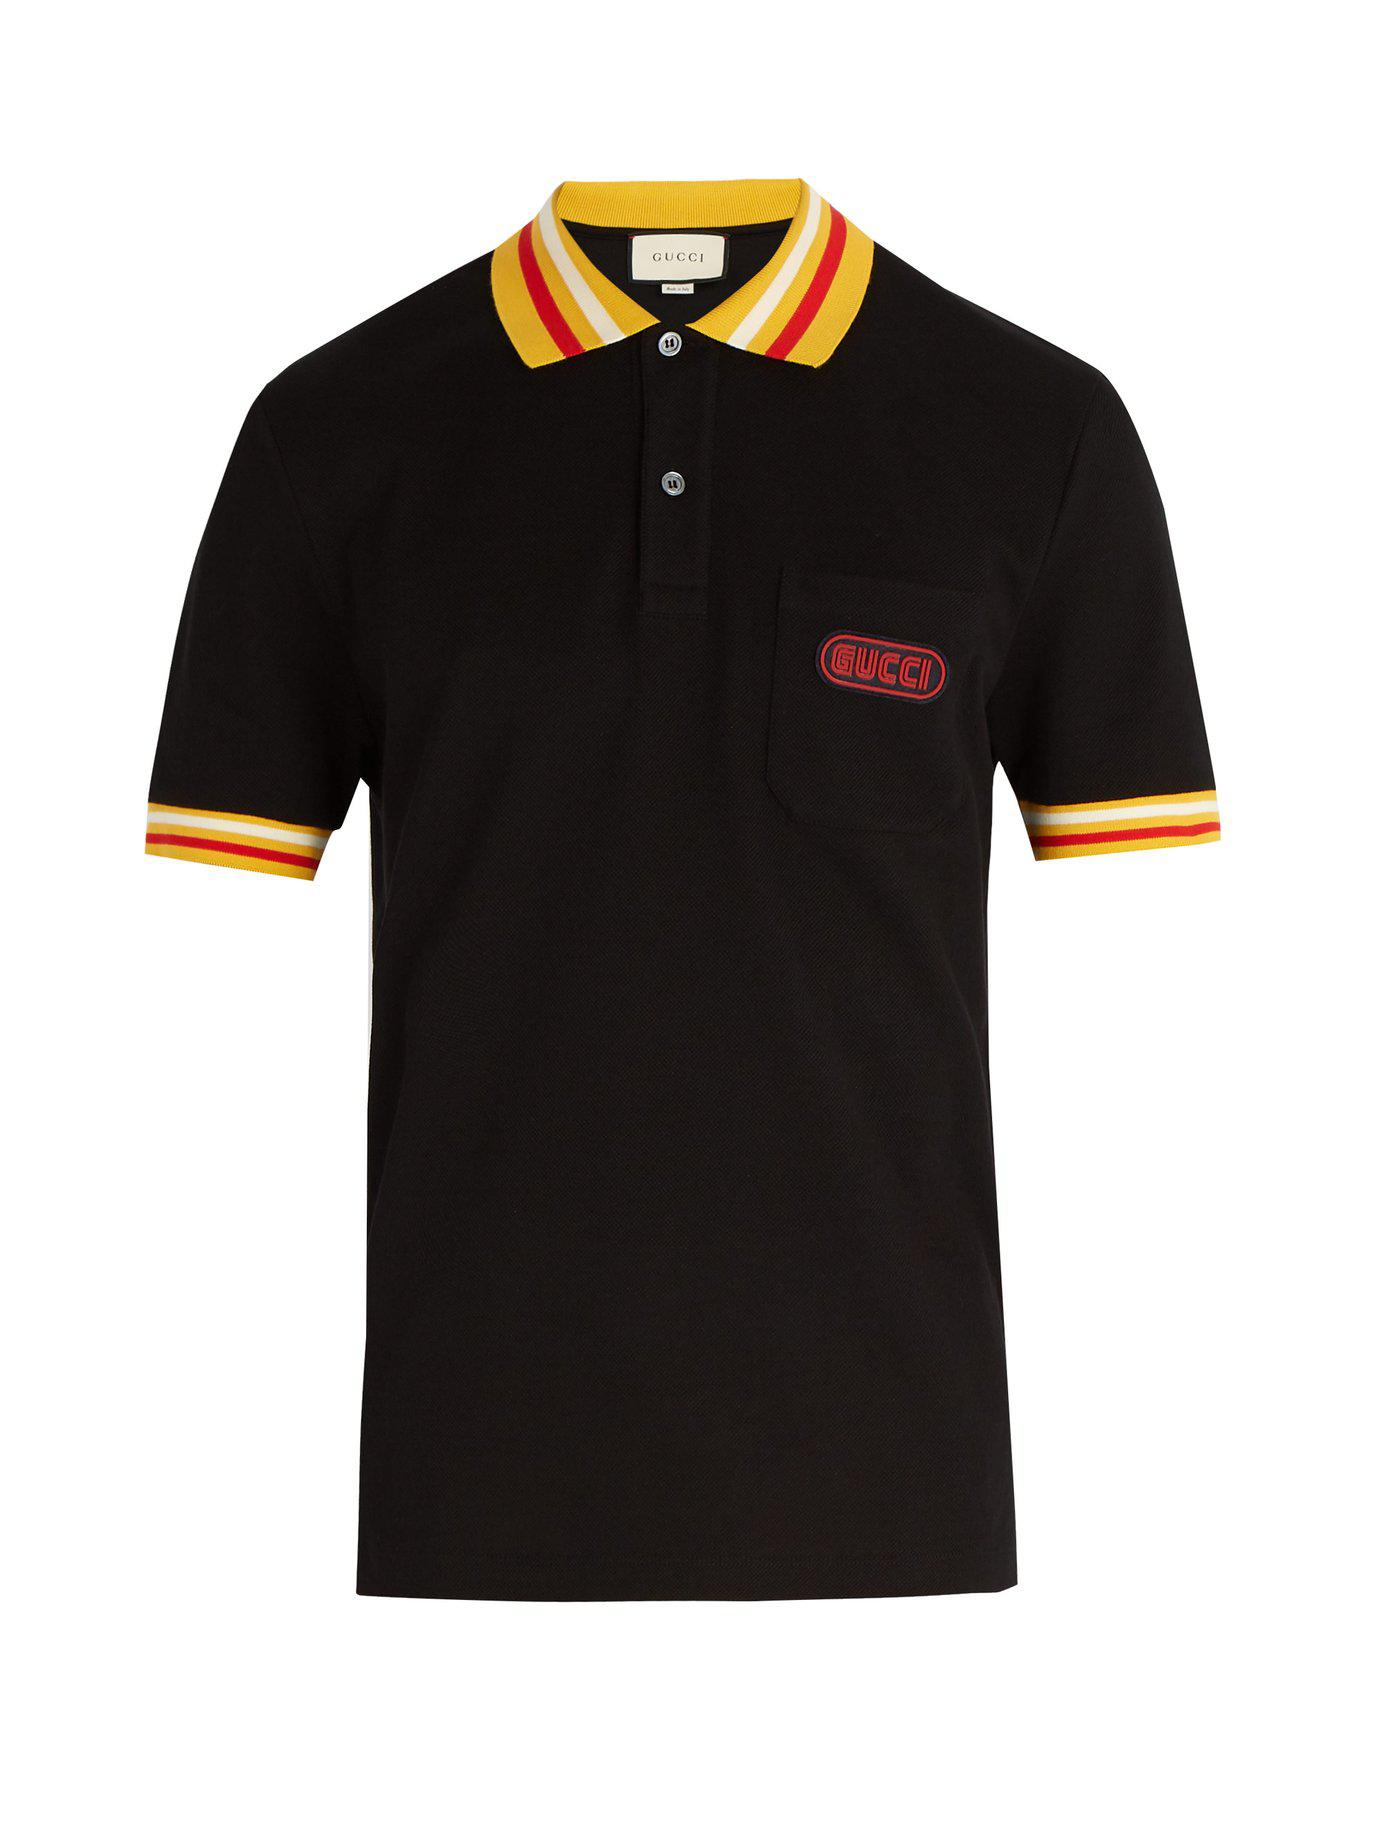 3a602cc6fd8e Lyst - Gucci Men s Pique-knit Polo Shirt With Contrast Color in ...